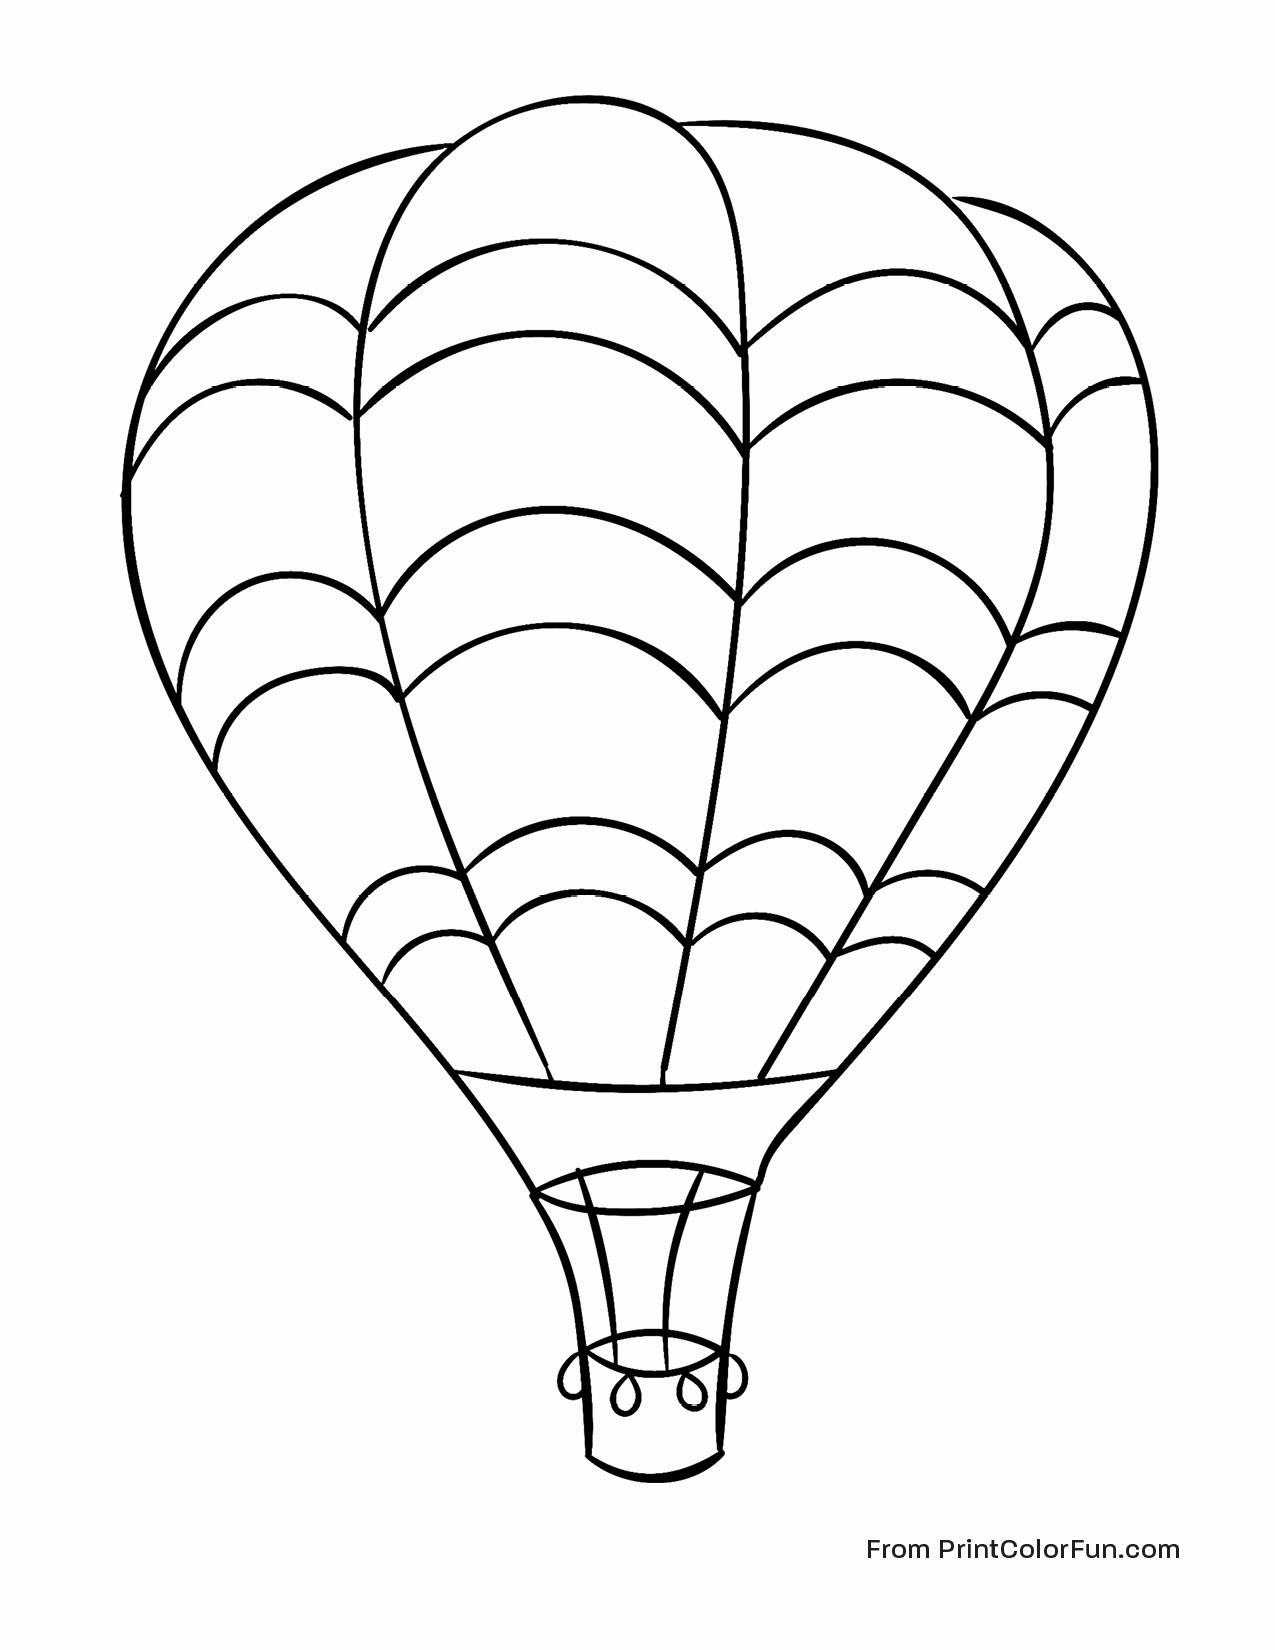 hot air balloons coloring pages hot air balloon coloring pages getcoloringpagesorg balloons hot coloring pages air